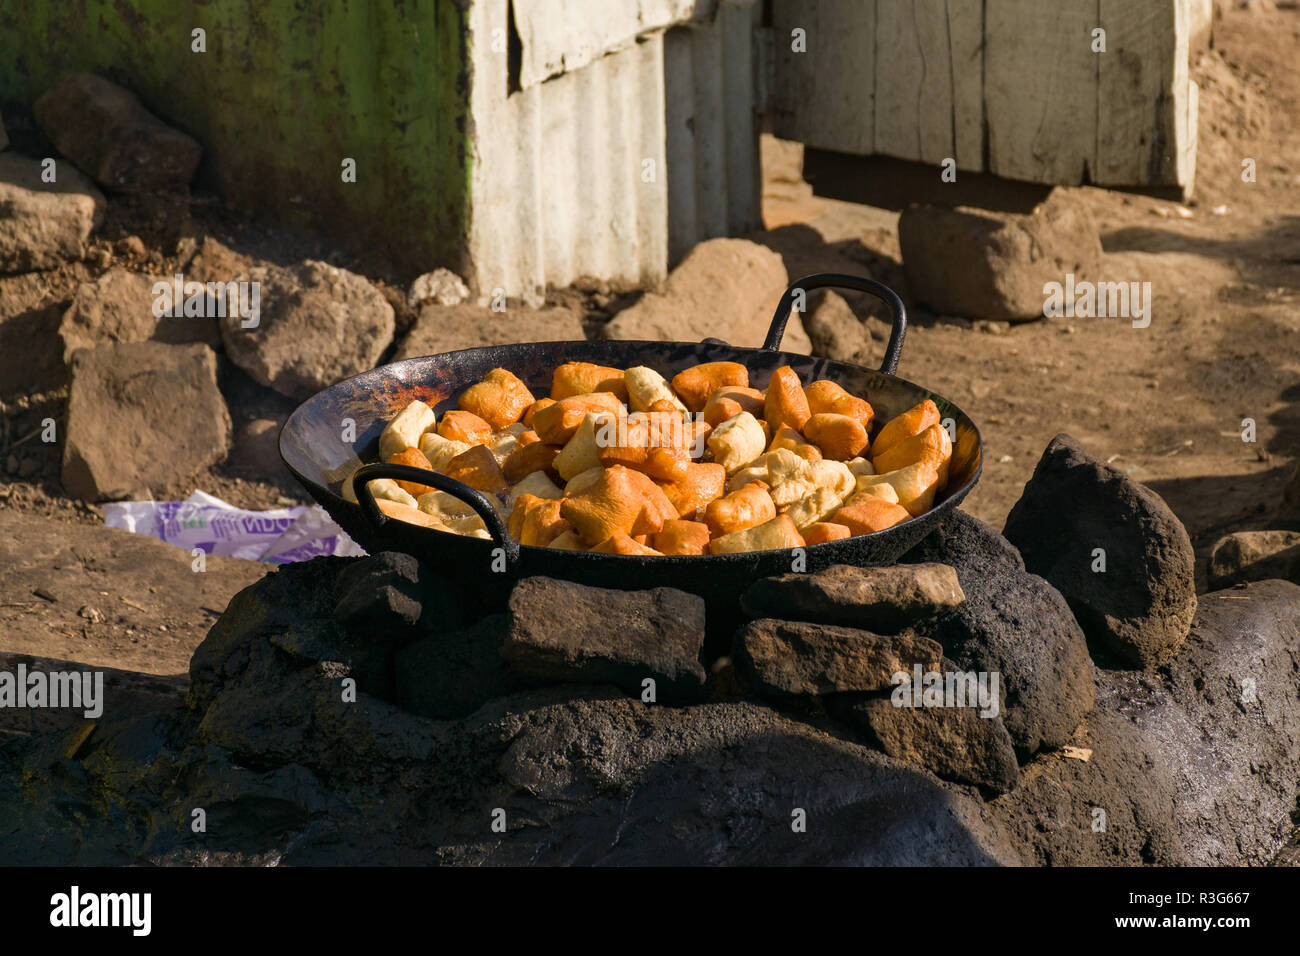 Mandazi A Swahili Fried Bread Snack Also Known As Dabo Or Dahir Being Cooked In A Large Pan On A Stone Fire Pit In The Street Mathare Kenya Stock Photo Alamy